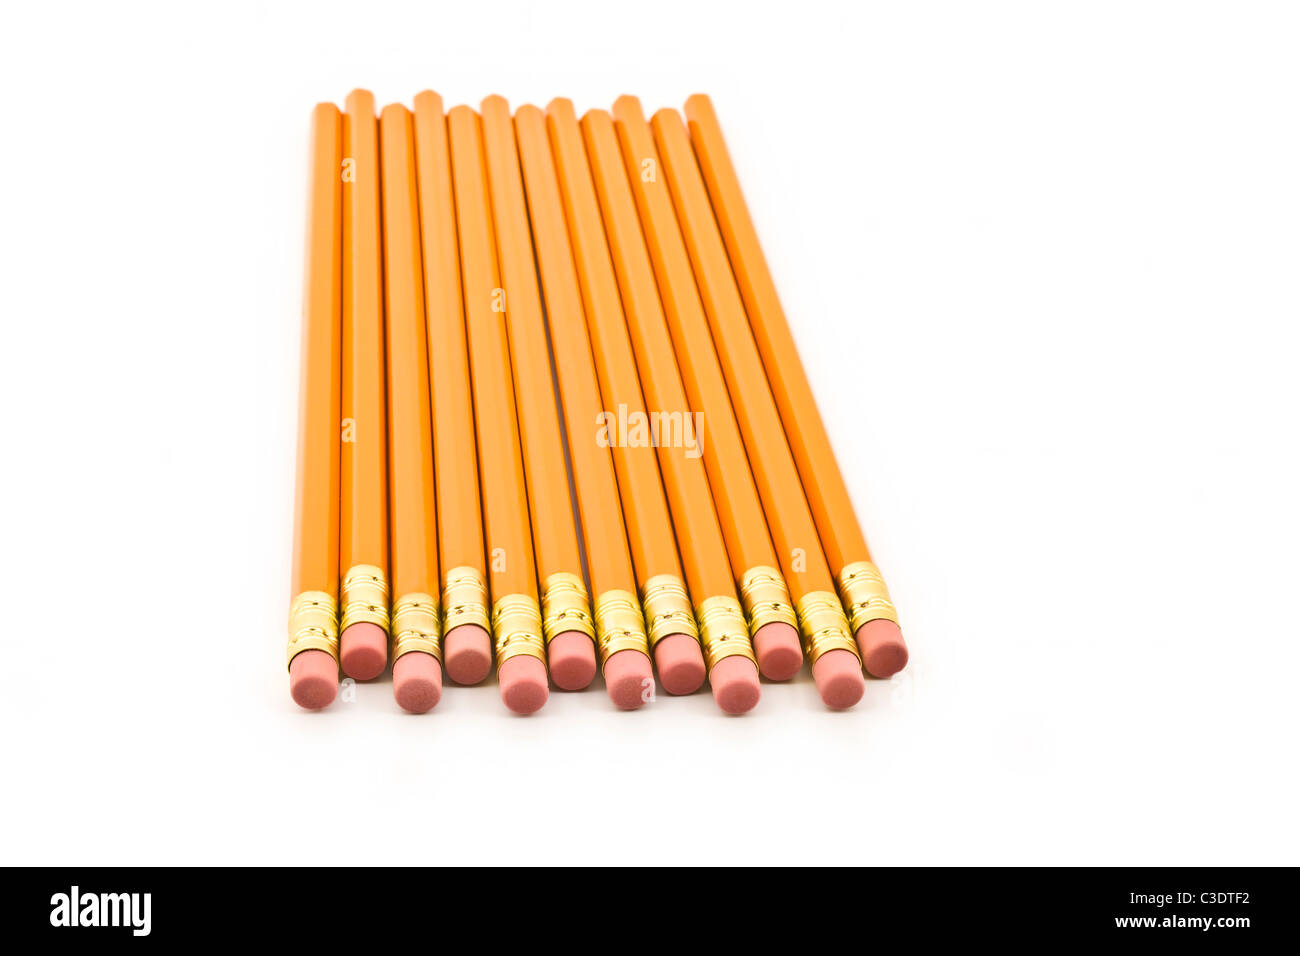 Pencils staggered and isolated on a white background - Stock Image